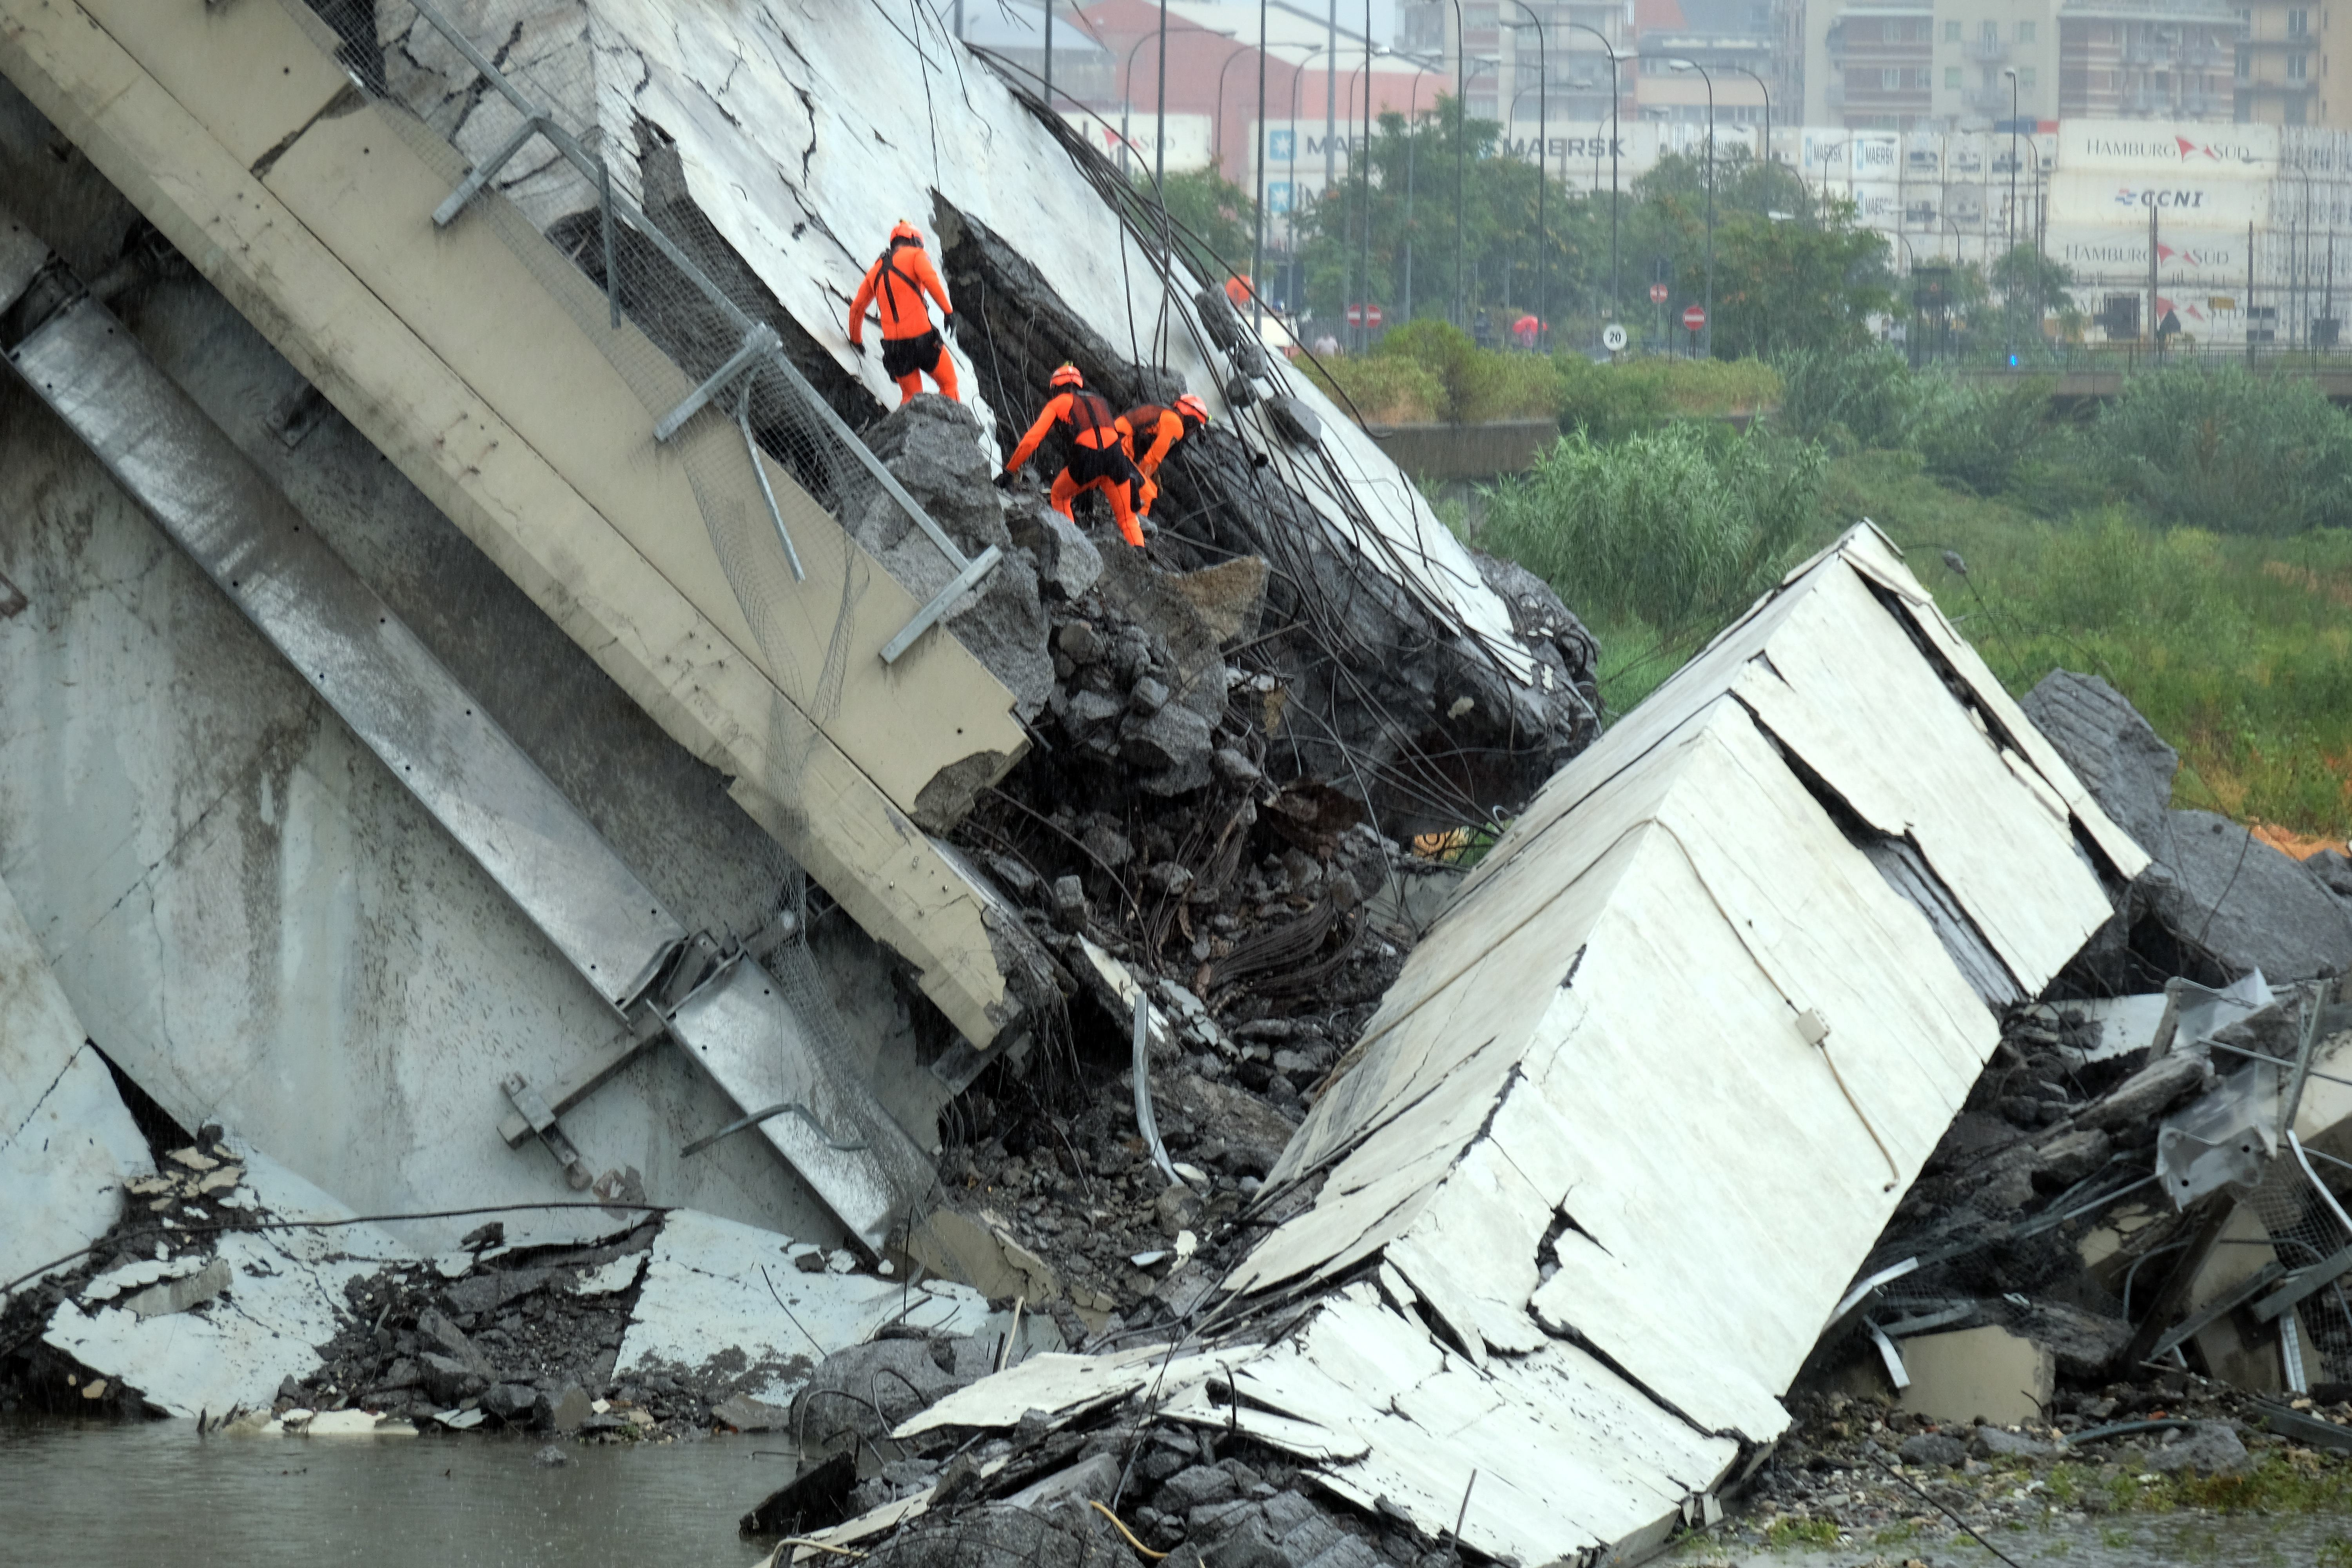 Rescuers are at work amid the rubble of a section of a giant motorway bridge that collapsed in Genoa.